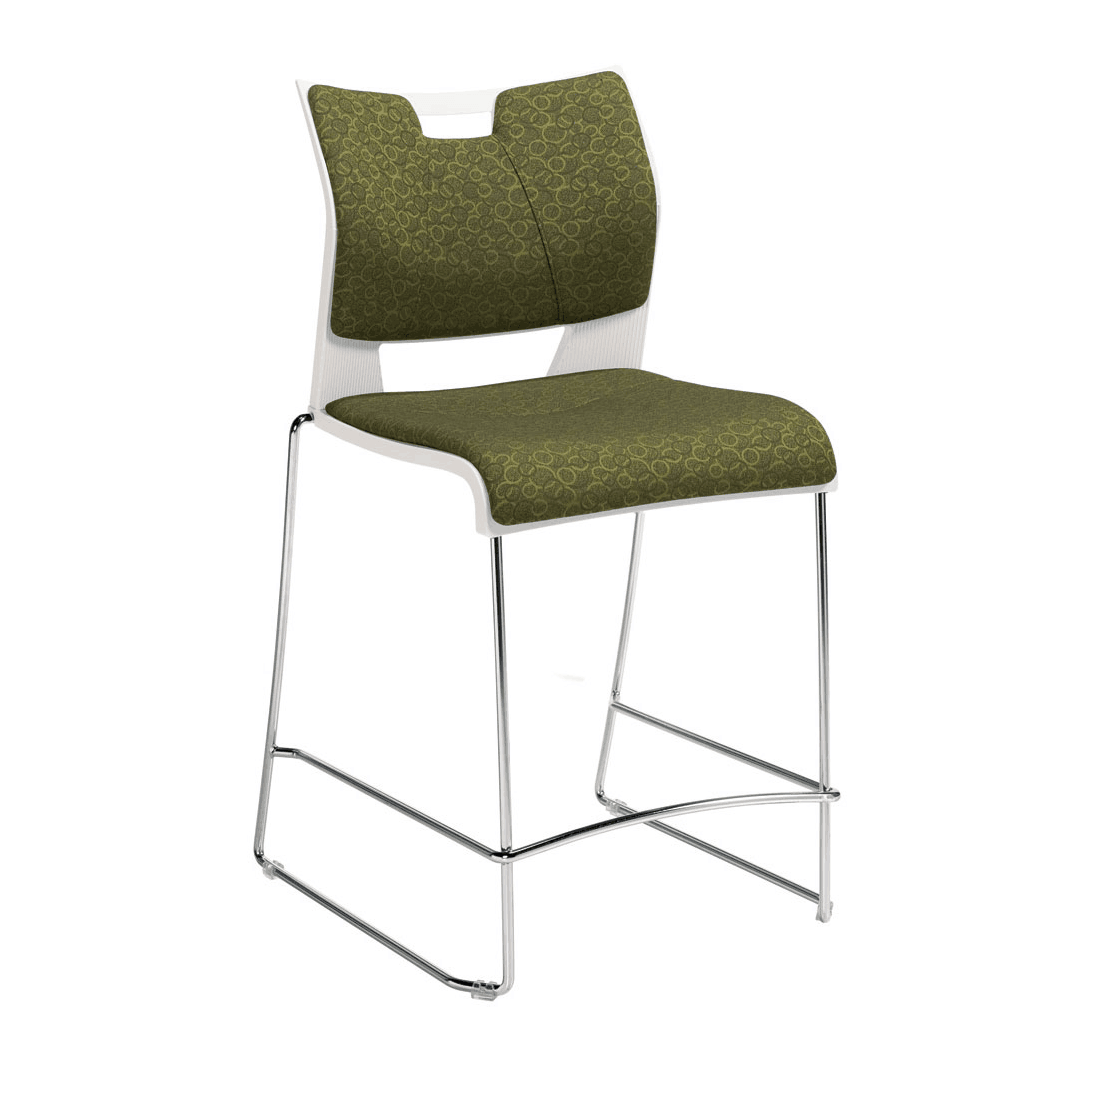 Global-Duet-Stool-No-arms-fabric